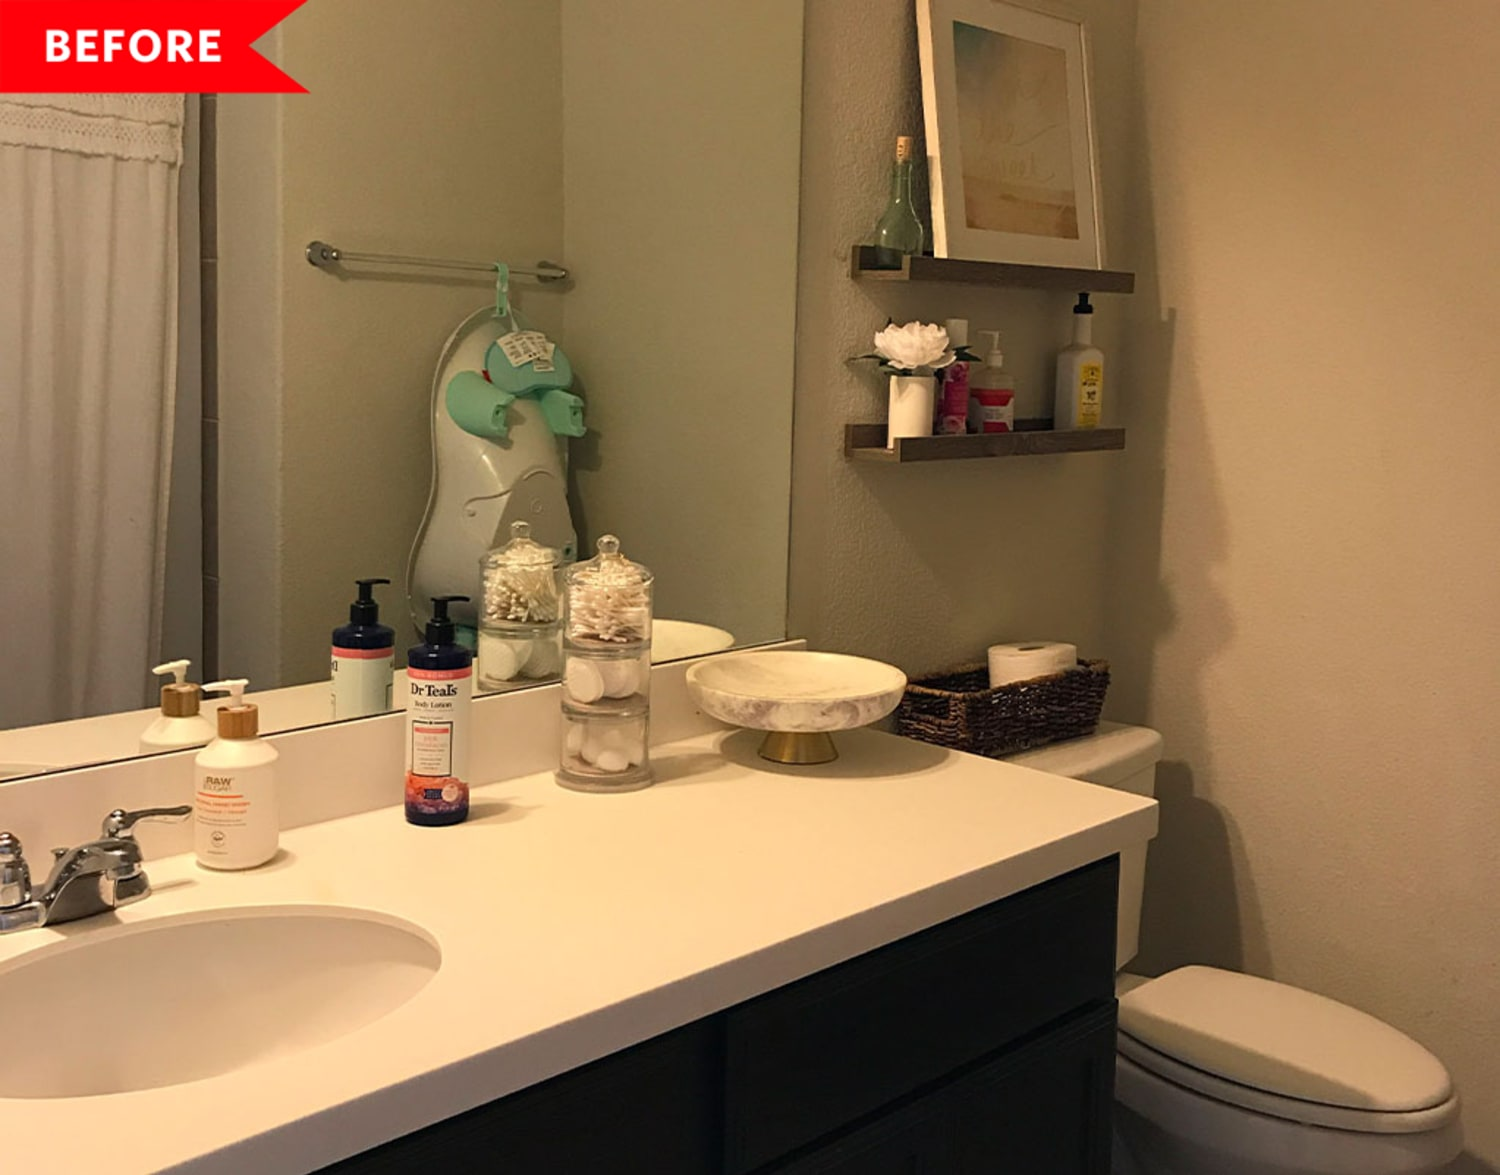 Before and After: It's Hard to Believe This Dramatic Bathroom Redo Cost Just $800